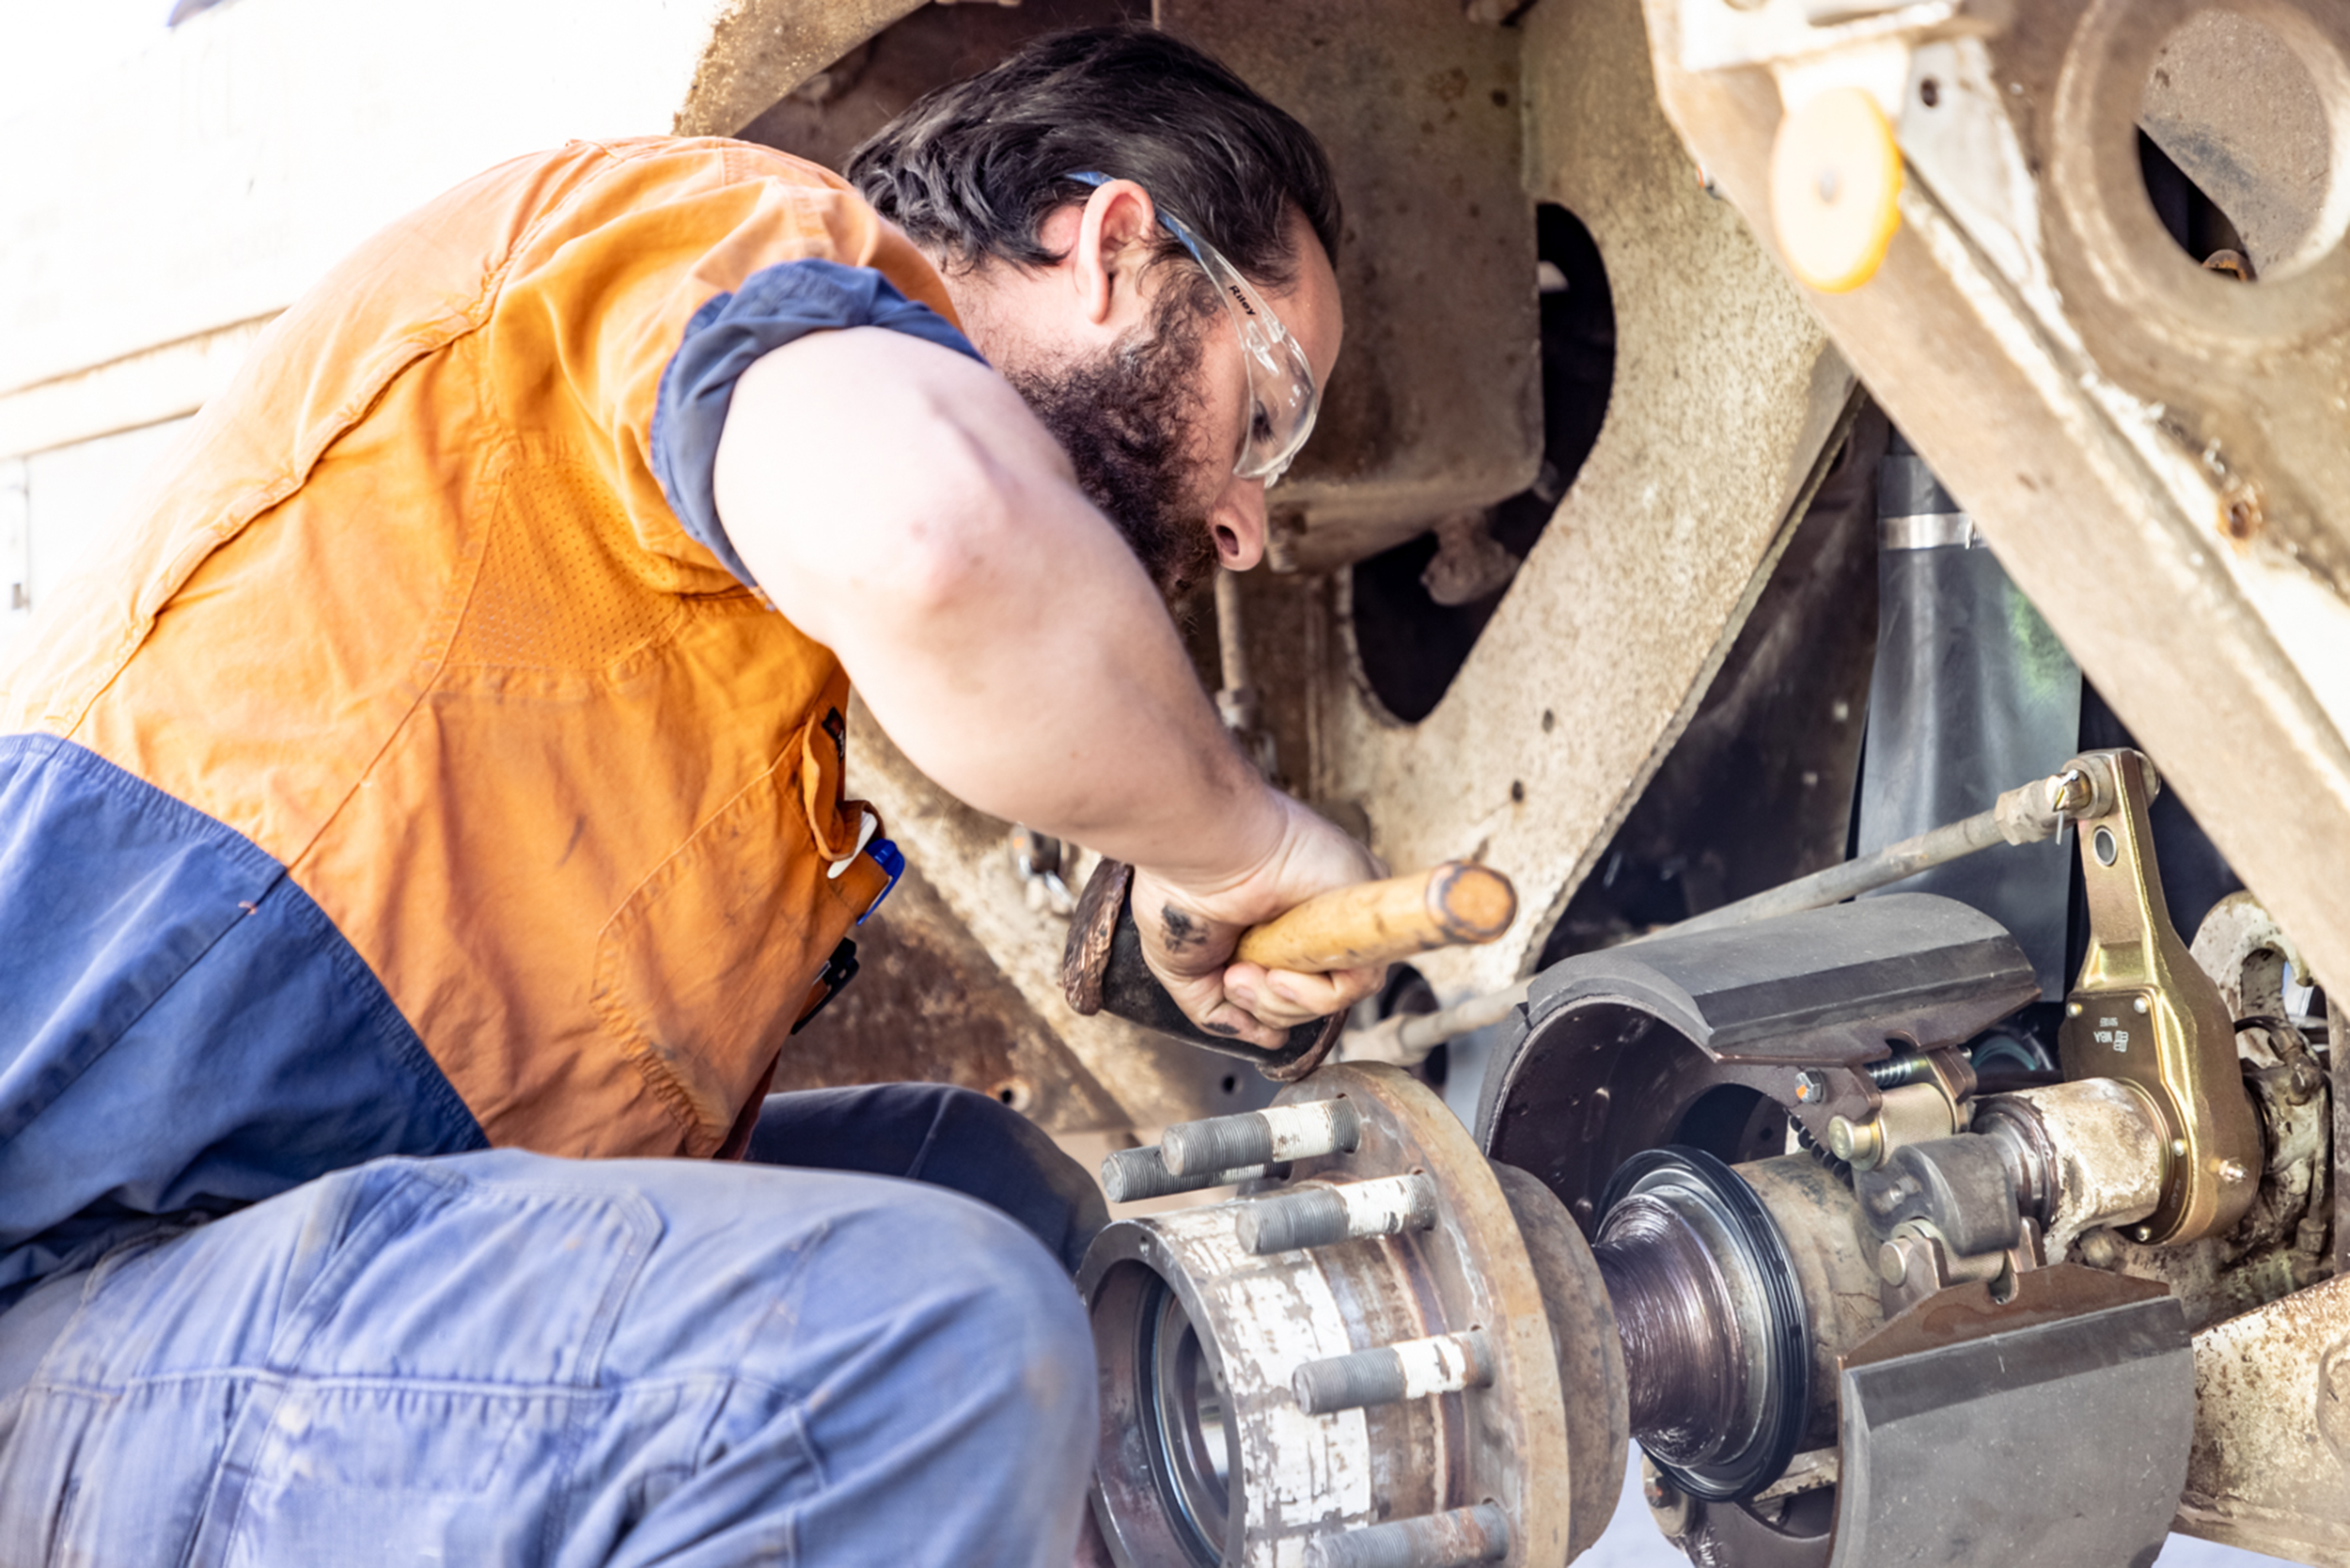 Drake service all types of transport trailer repairs jobs - onsite and in-house at our facility